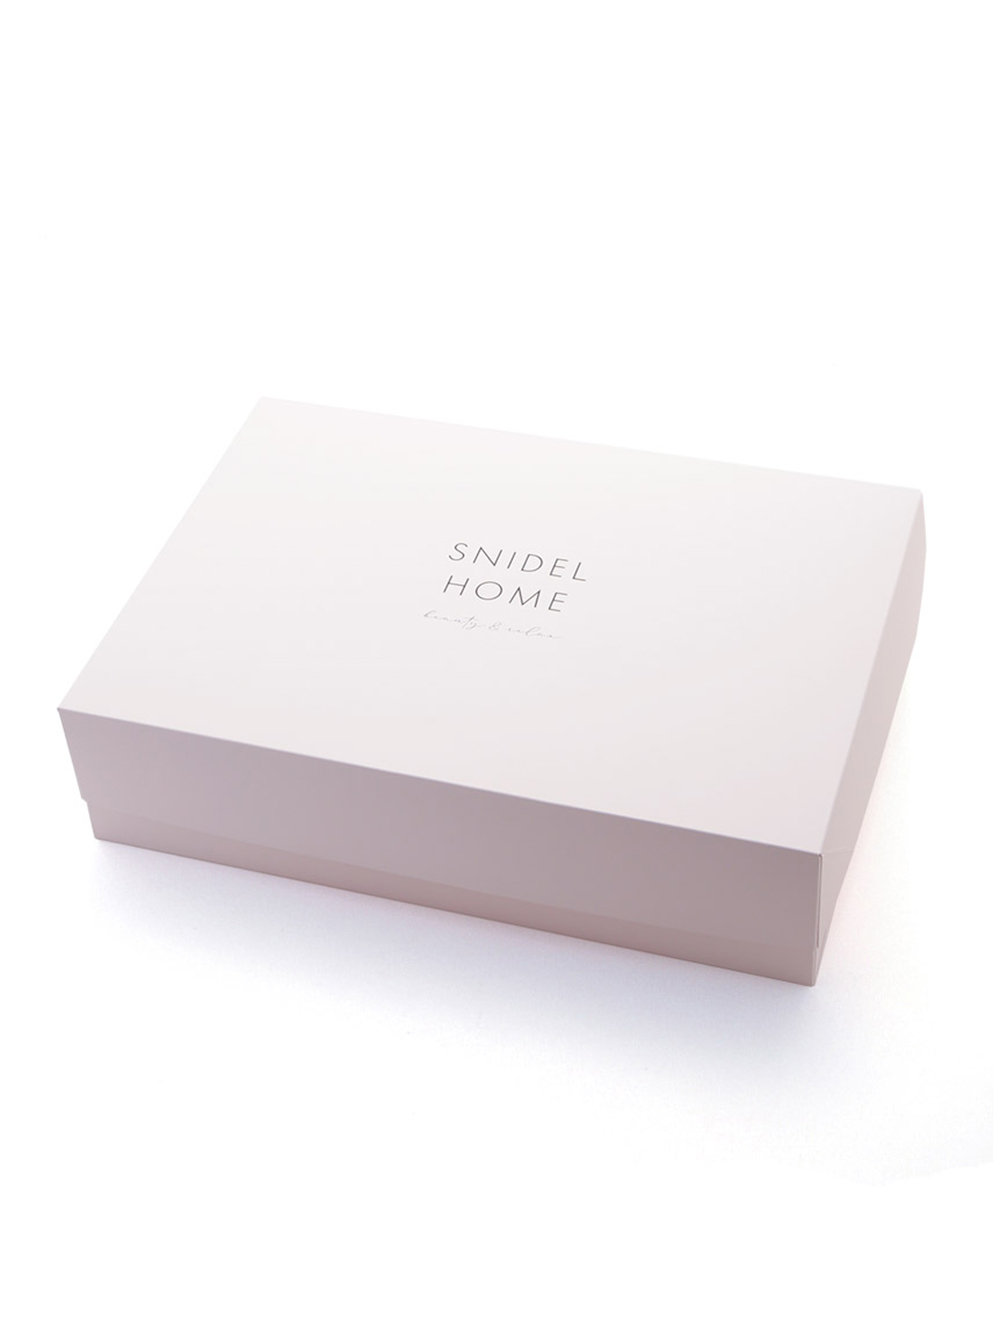 【SNIDEL HOME】ギフトBOX(LARGE)※ショッパー別売※